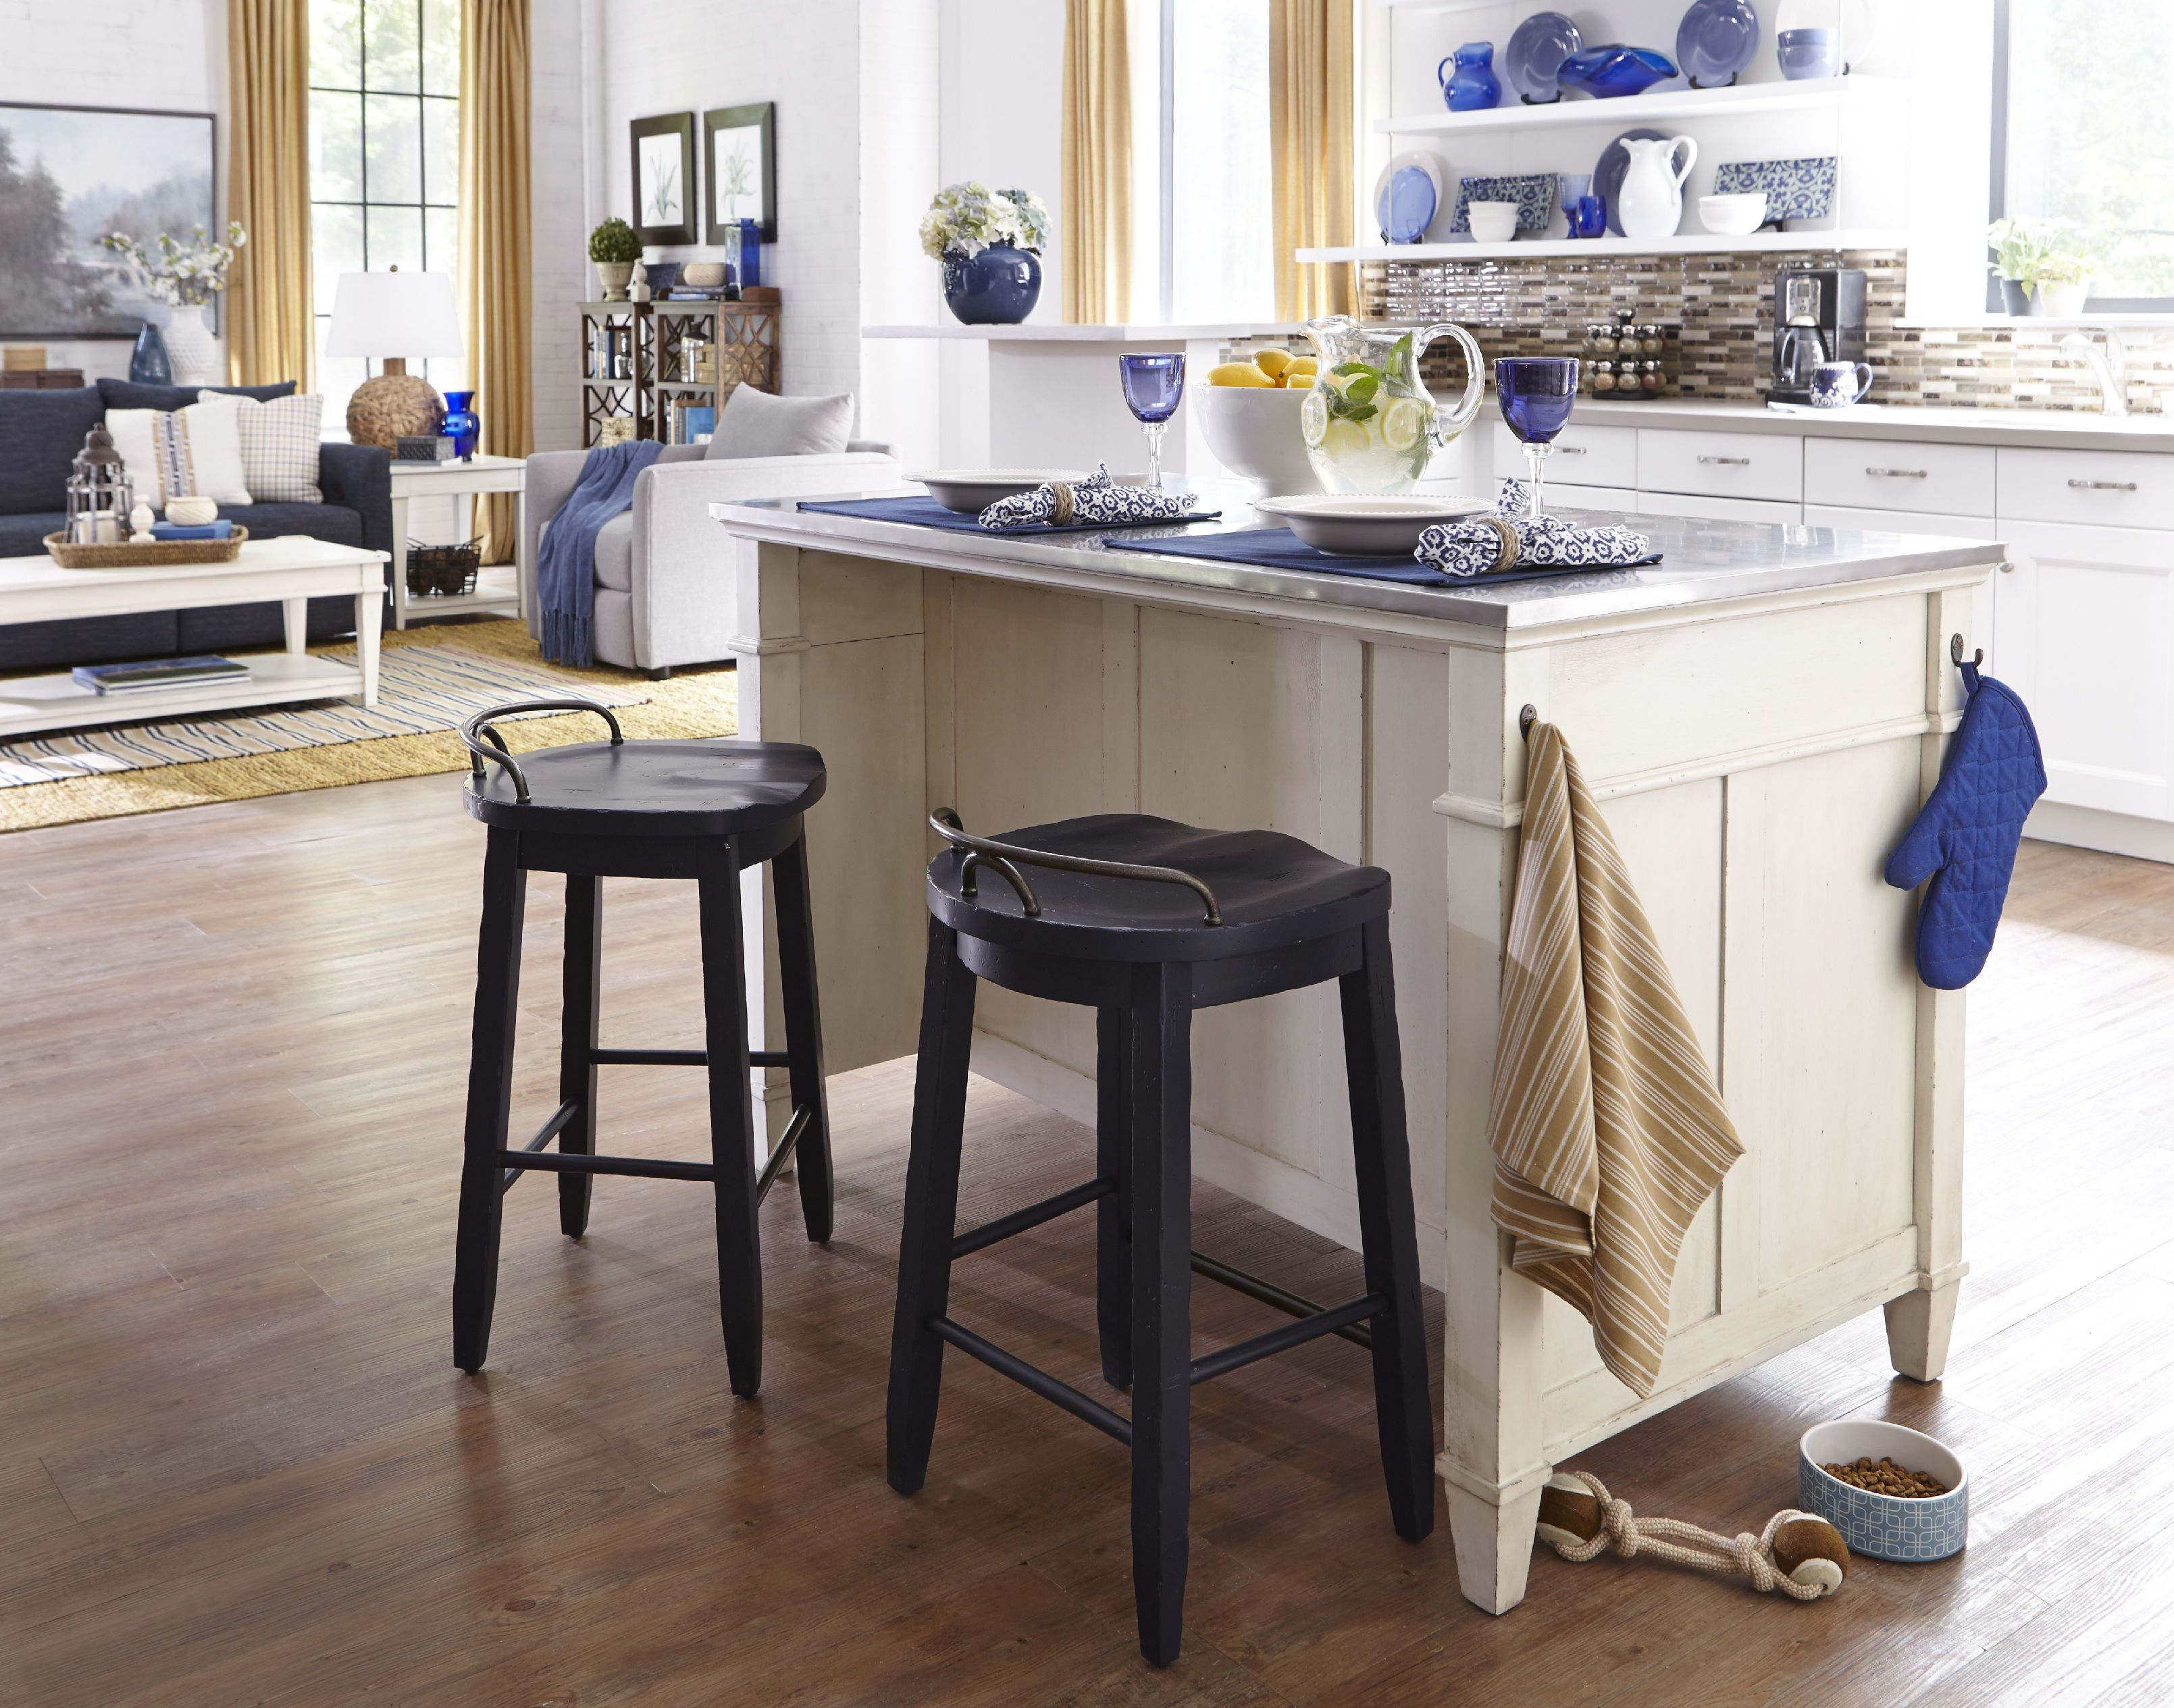 Trisha Yearwood Kitchen Cowboy Bar Stool